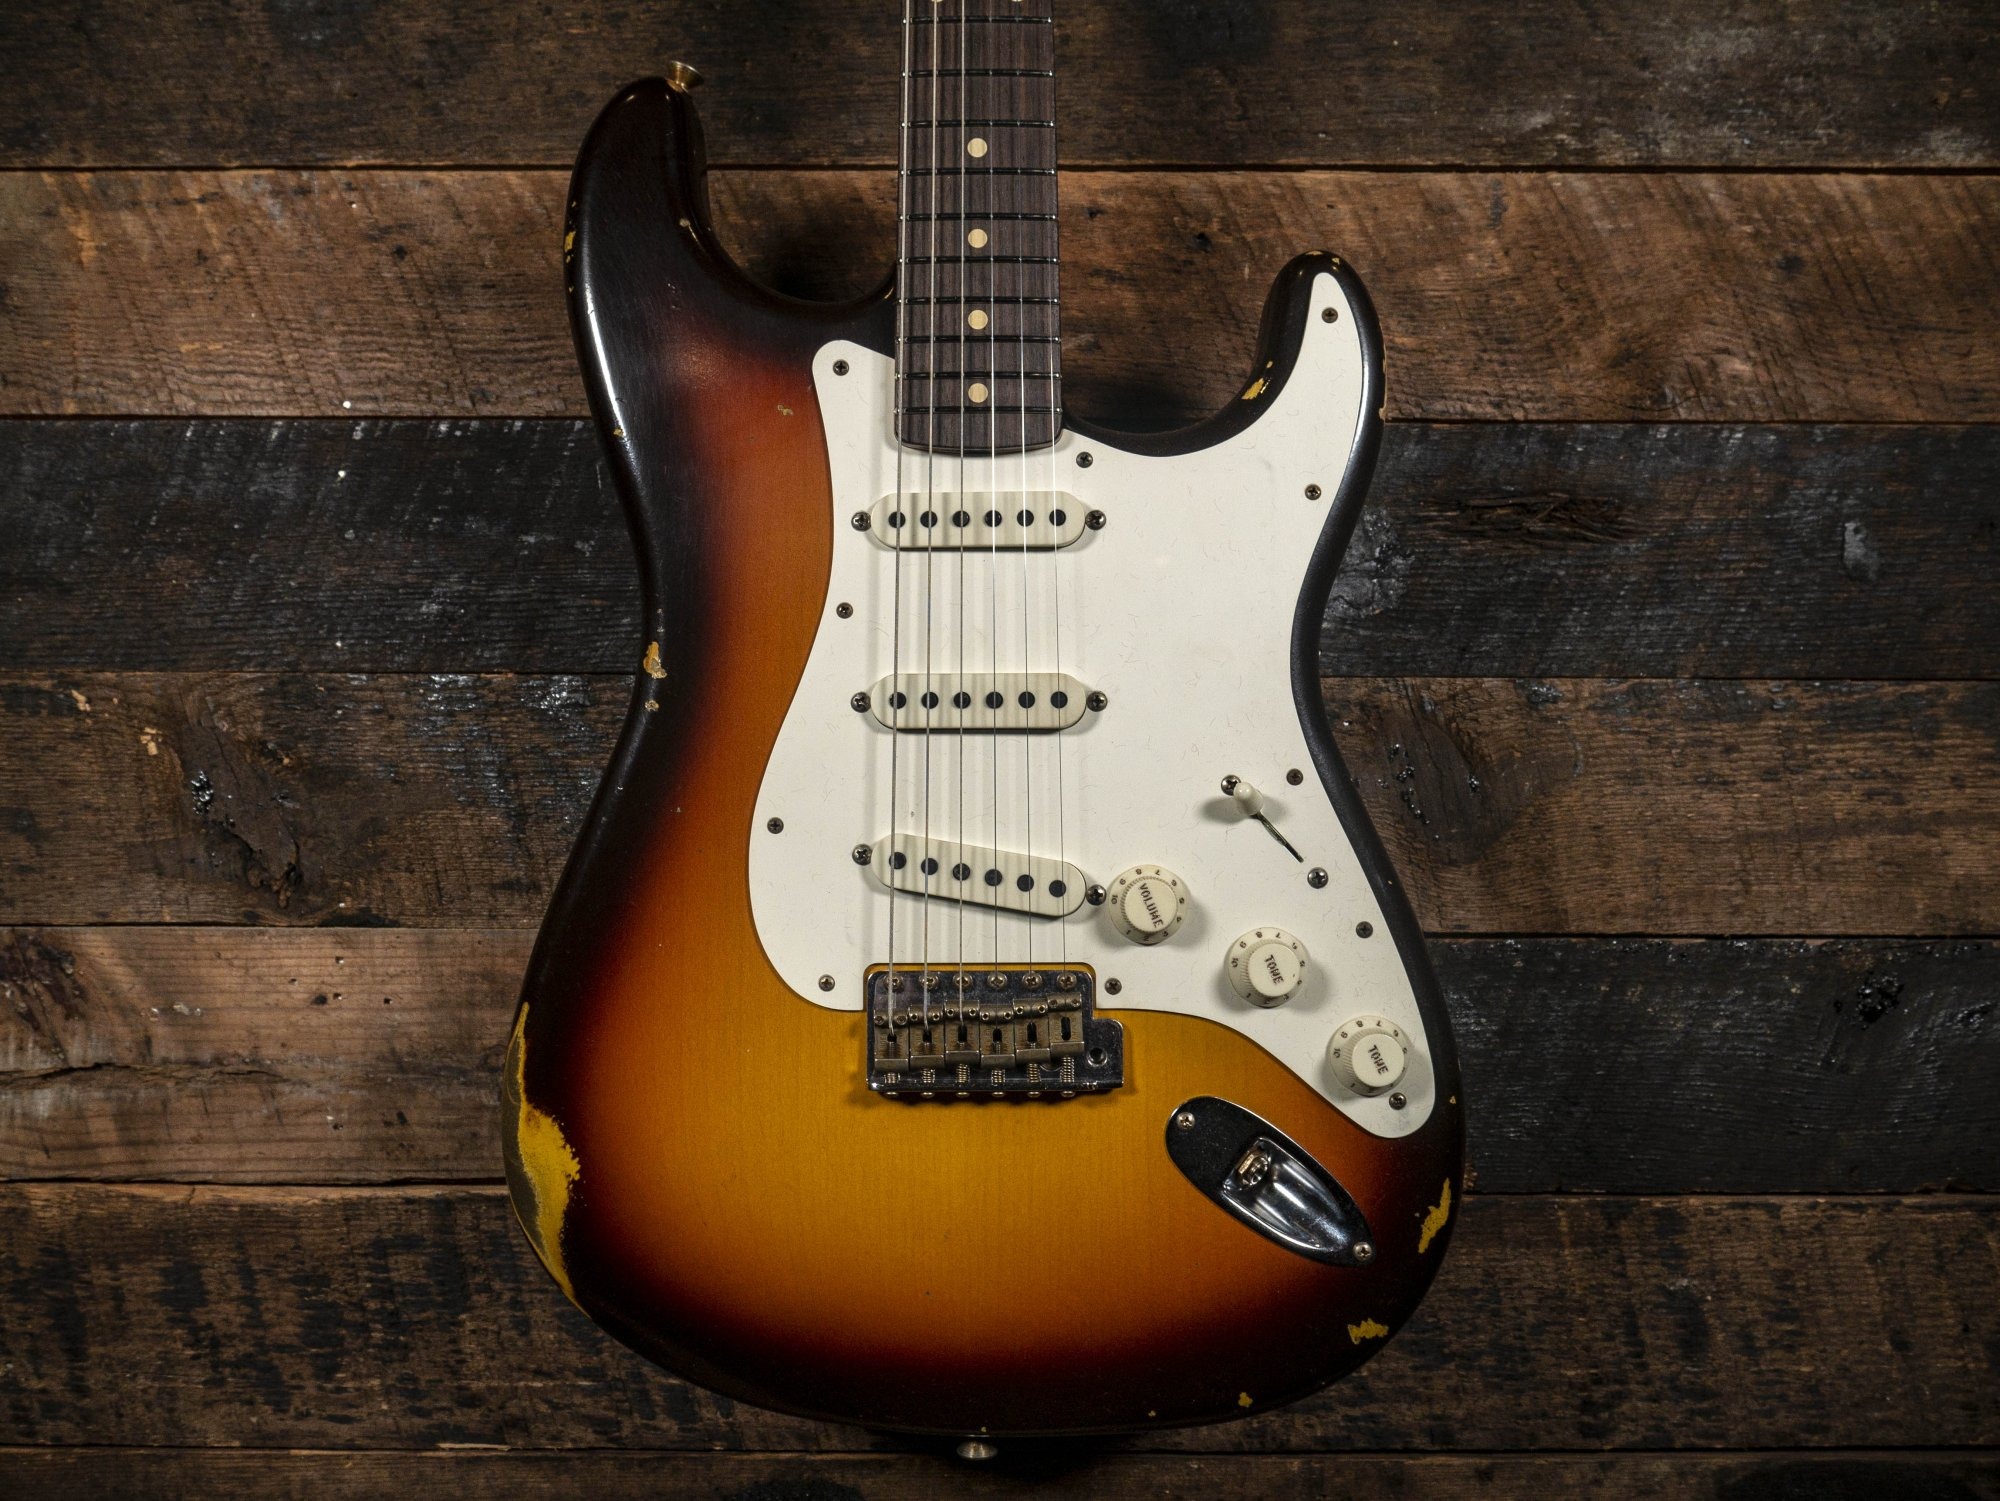 Fender Custom Shop Limited Transition 1959 Stratocaster Chocolate 3 Color Sunburst